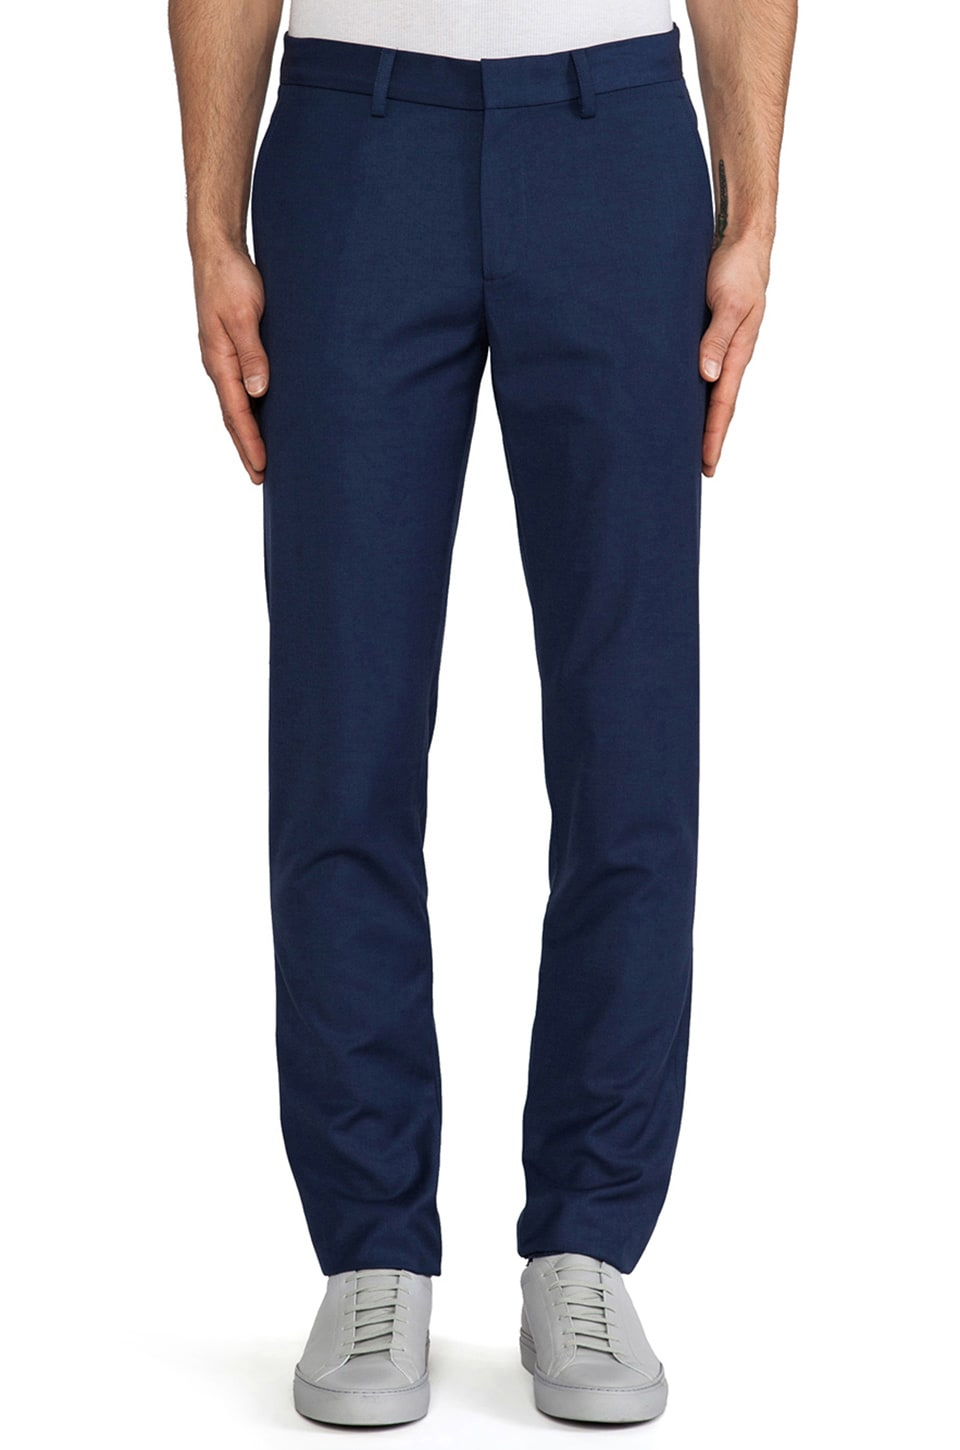 Shades of Grey by Micah Cohen Slim Fit Suit Pant in Classic Blue Wool